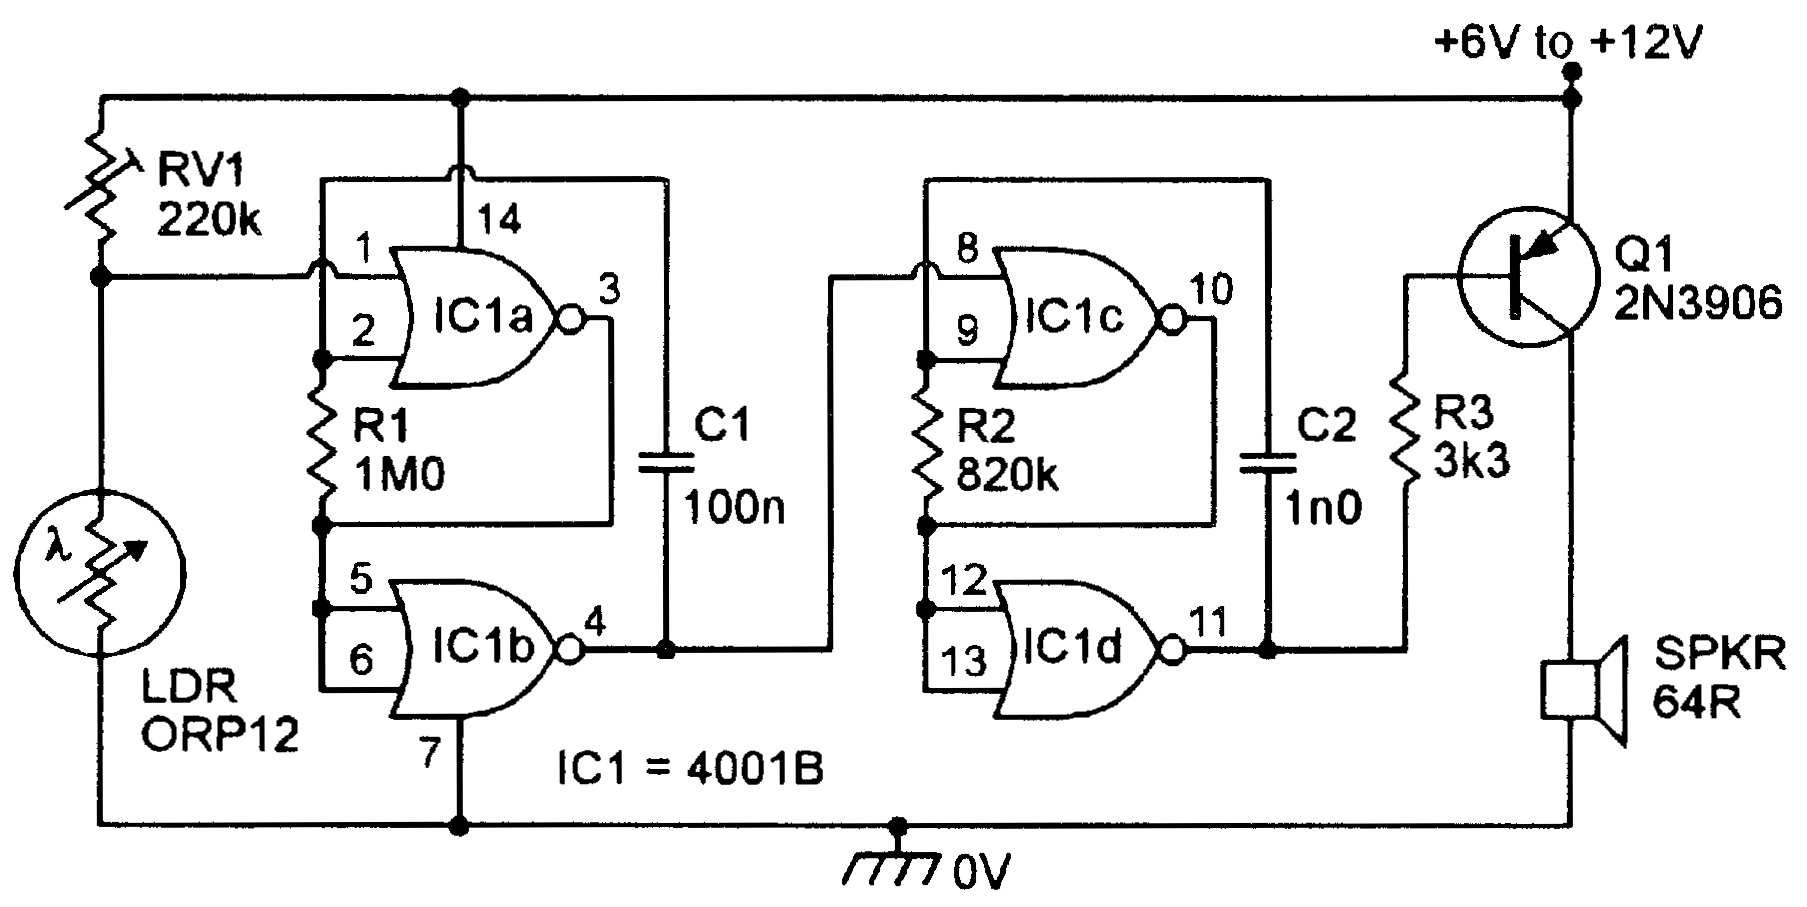 Light Sensitive Circuits Nuts Volts Magazine Sound Detector Using Lm324 Siren Output Ldr Alarms